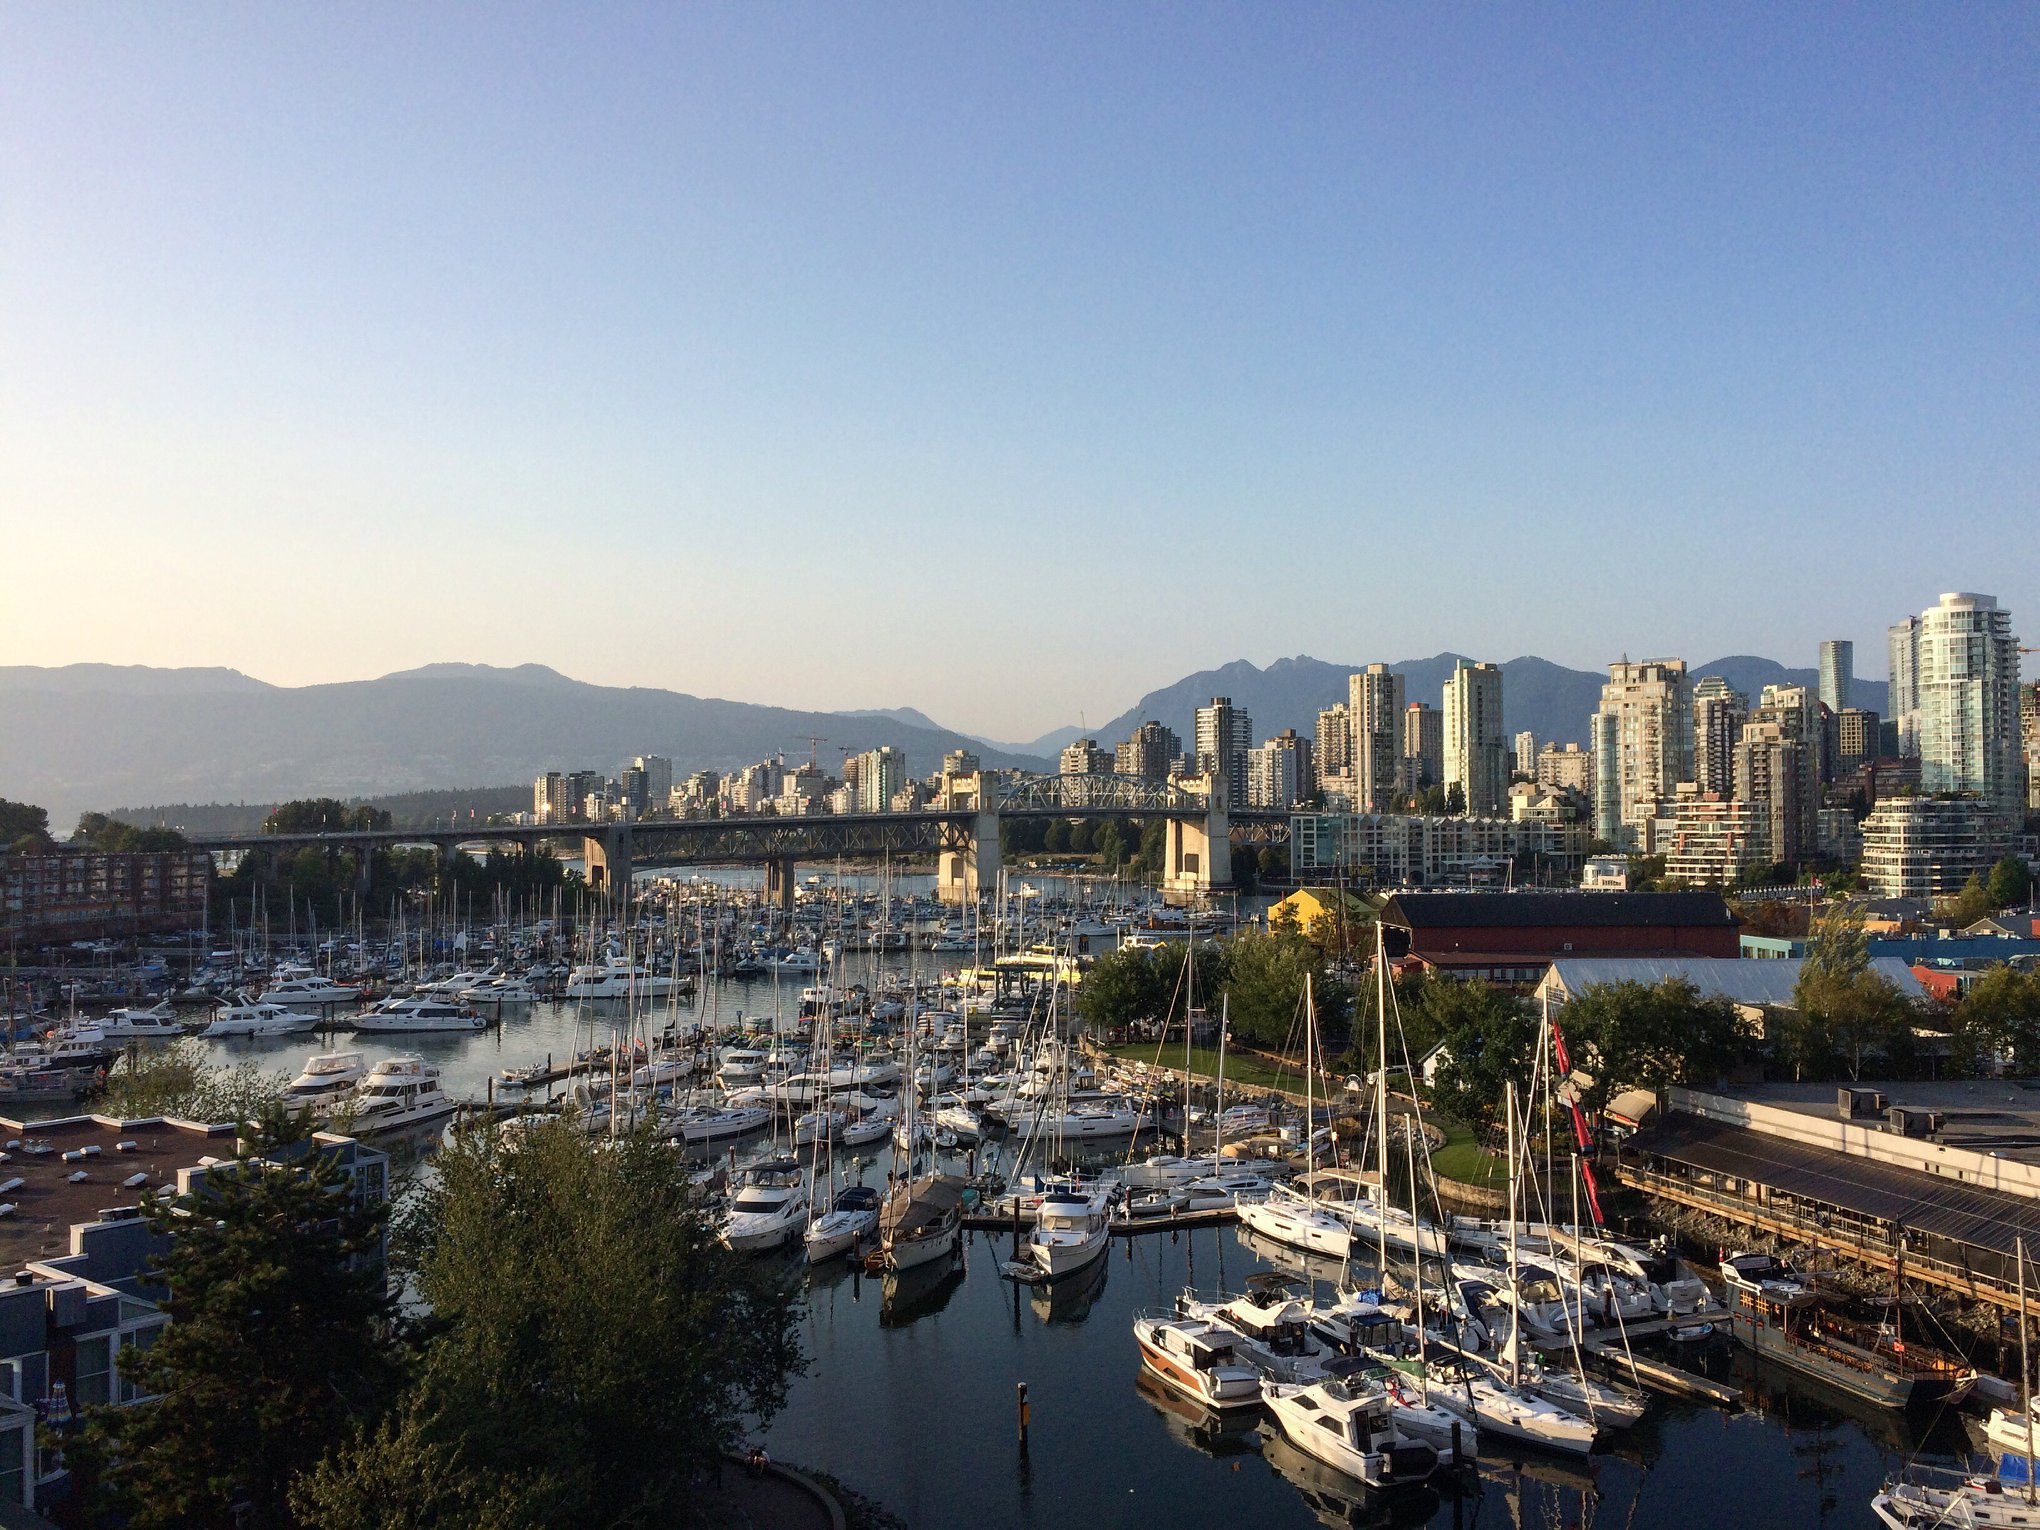 Vancouver from above Granville Island